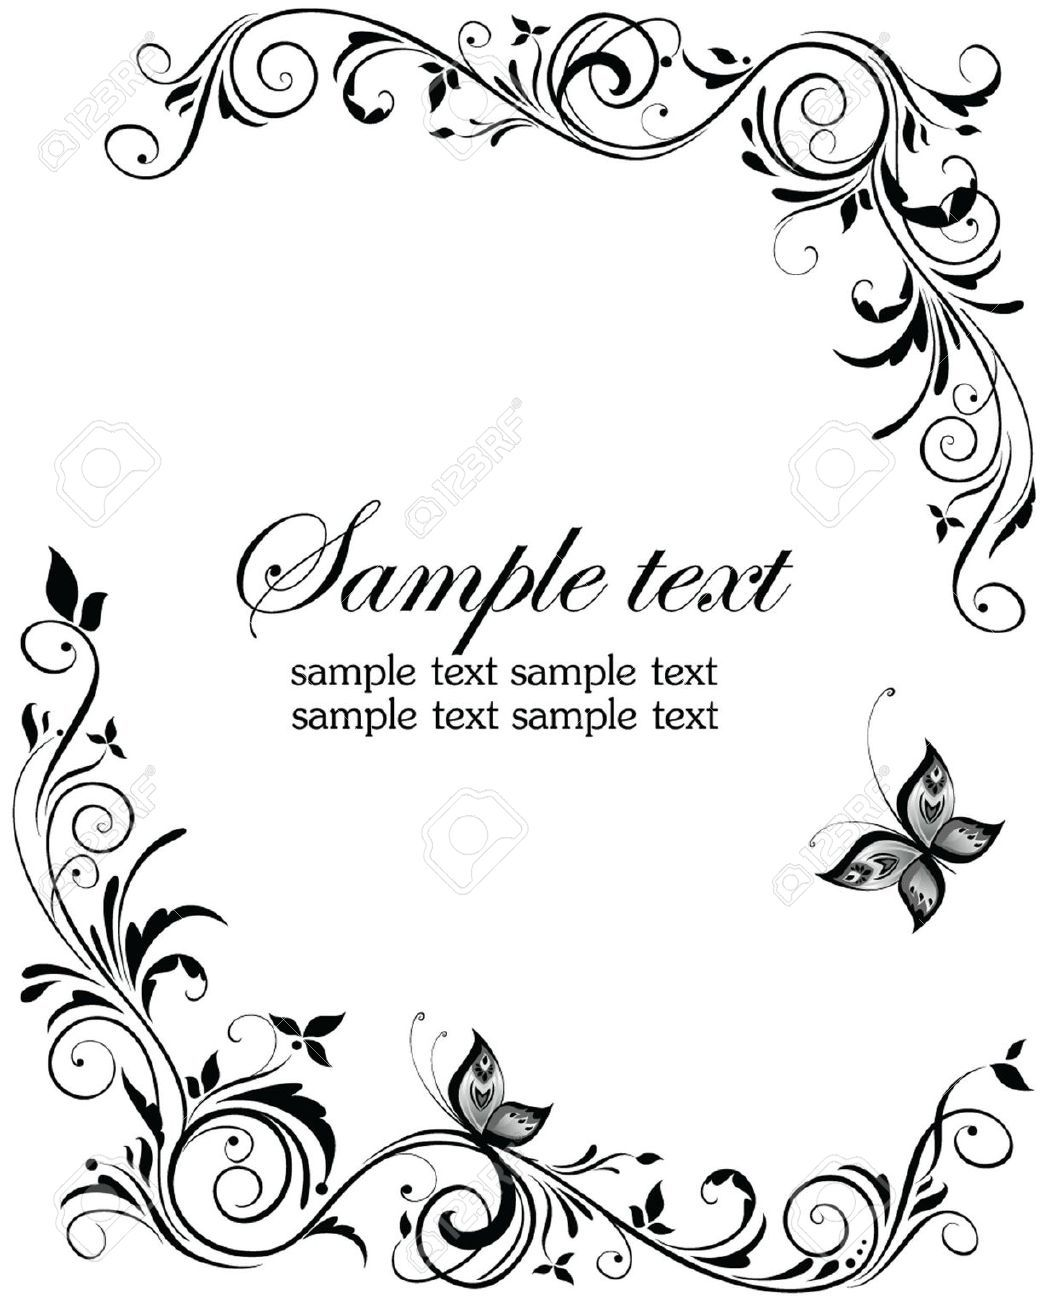 invitation border templates cloudinvitation, free border designs ...